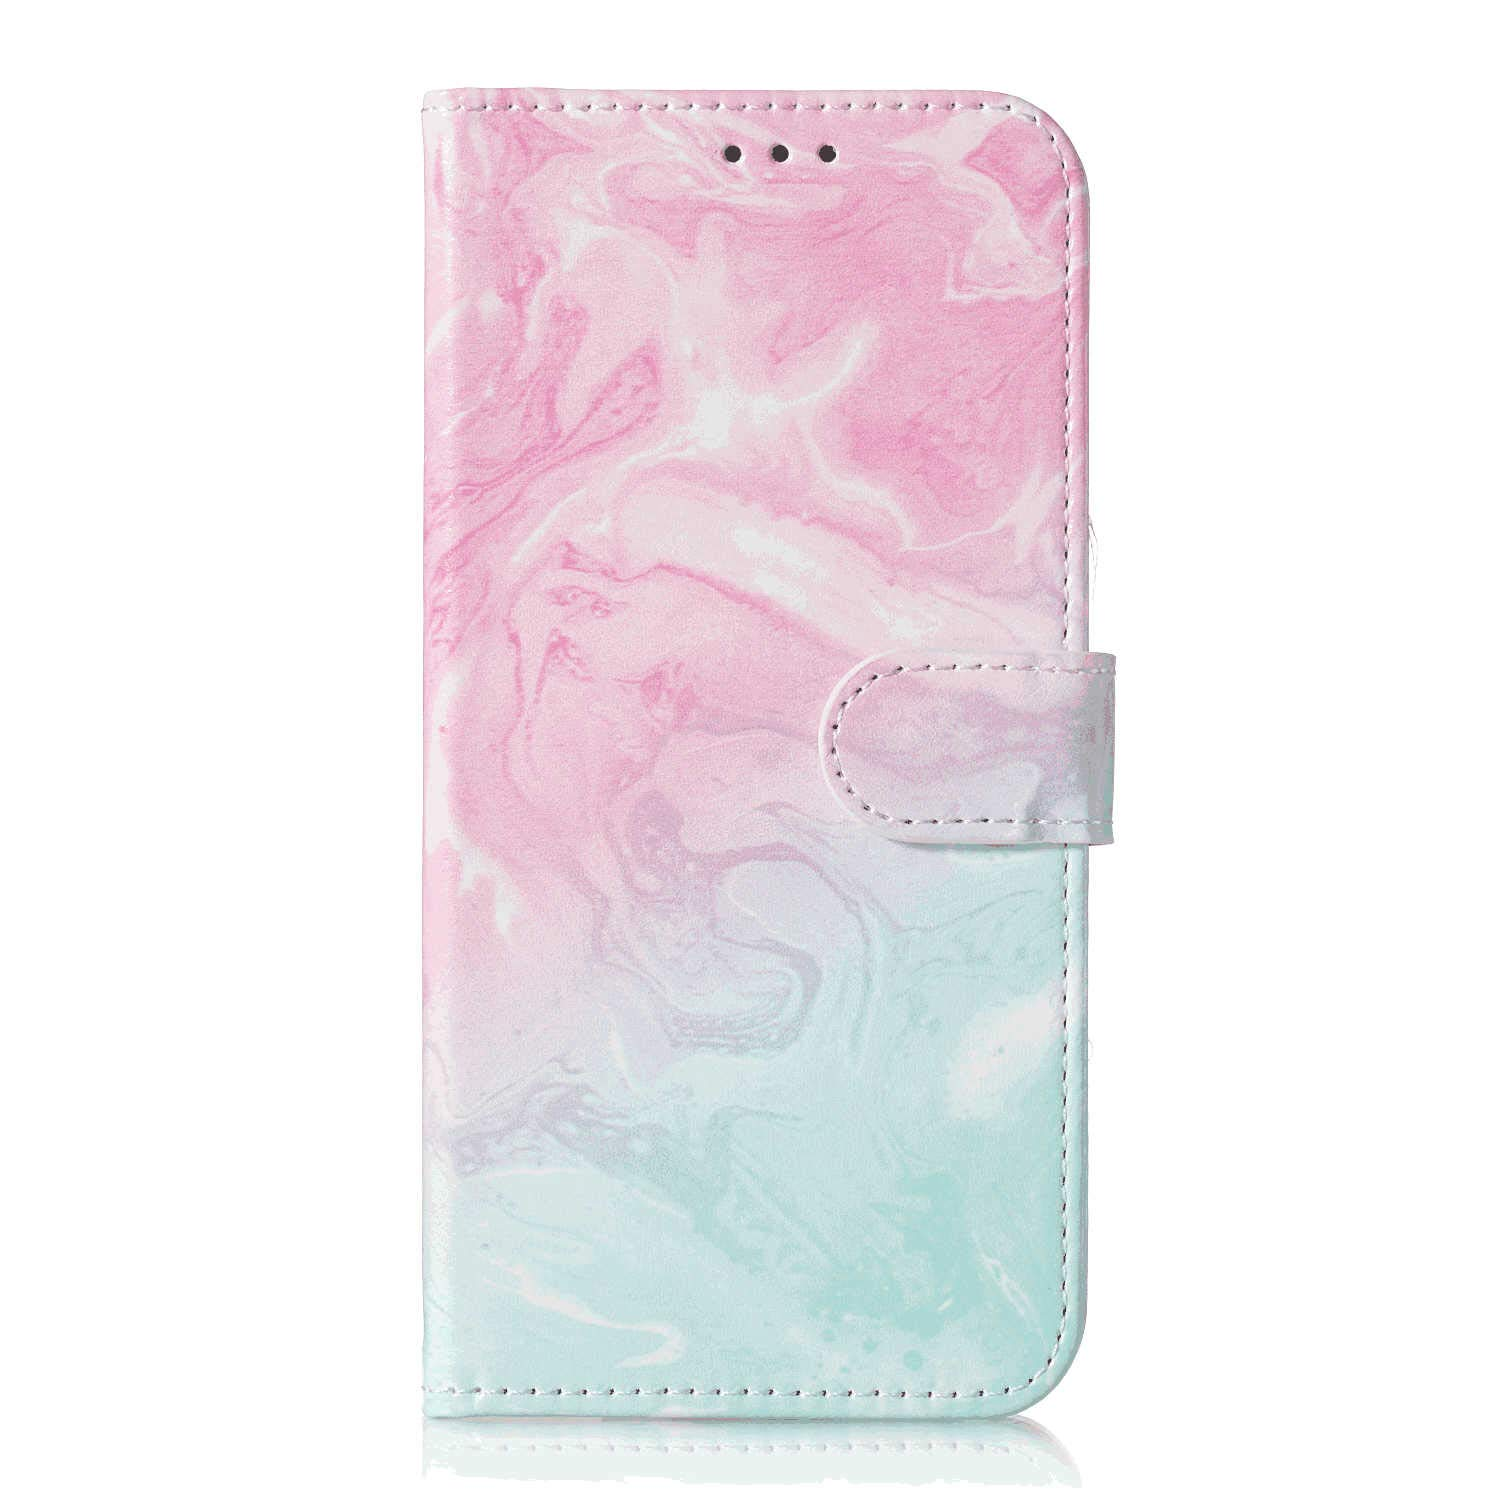 PU Leather Flip Case for Huawei P30 lite, Durable Soft Wallet Cover for Huawei P30 lite